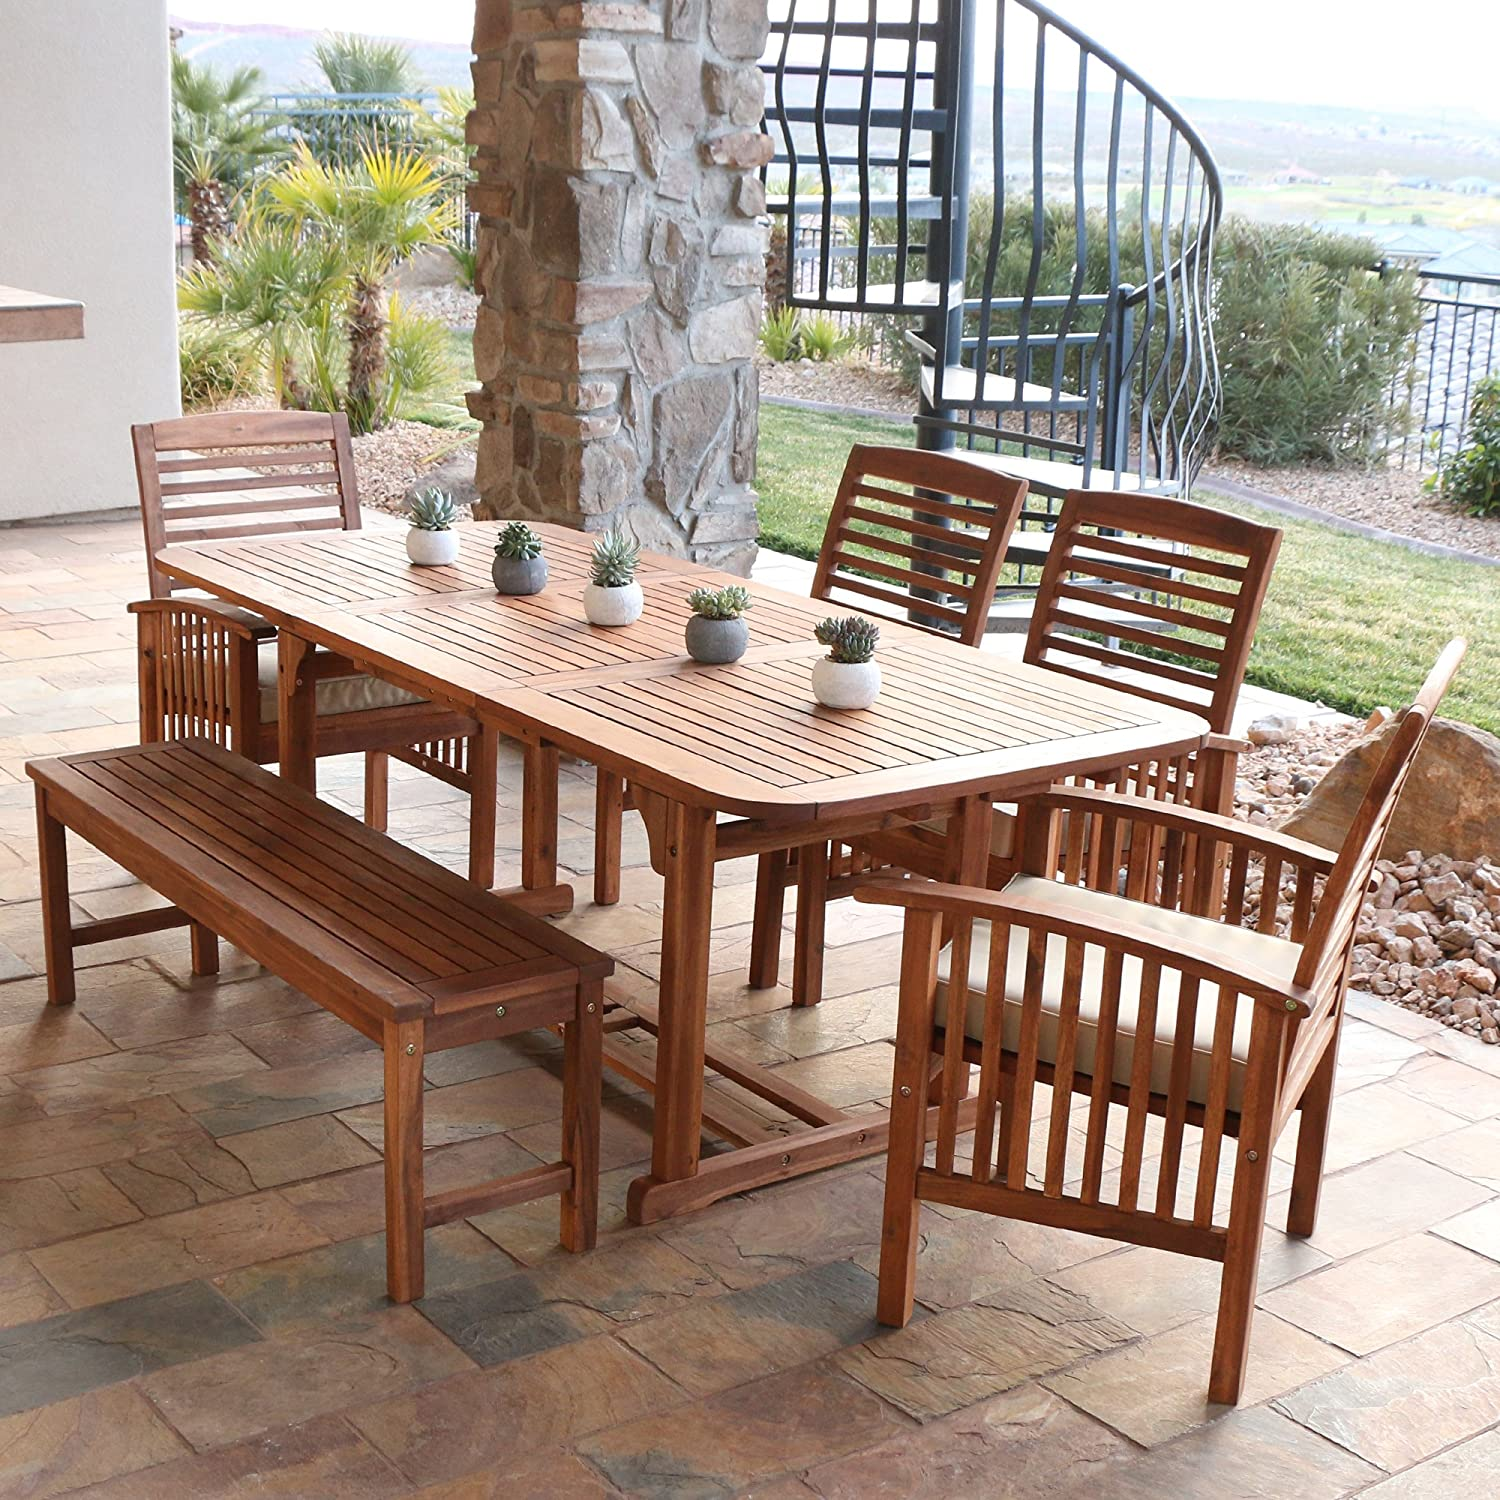 Amazon com  WE Furniture Solid Acacia Wood 6 Piece Patio Dining Set  Garden    Outdoor. Amazon com  WE Furniture Solid Acacia Wood 6 Piece Patio Dining